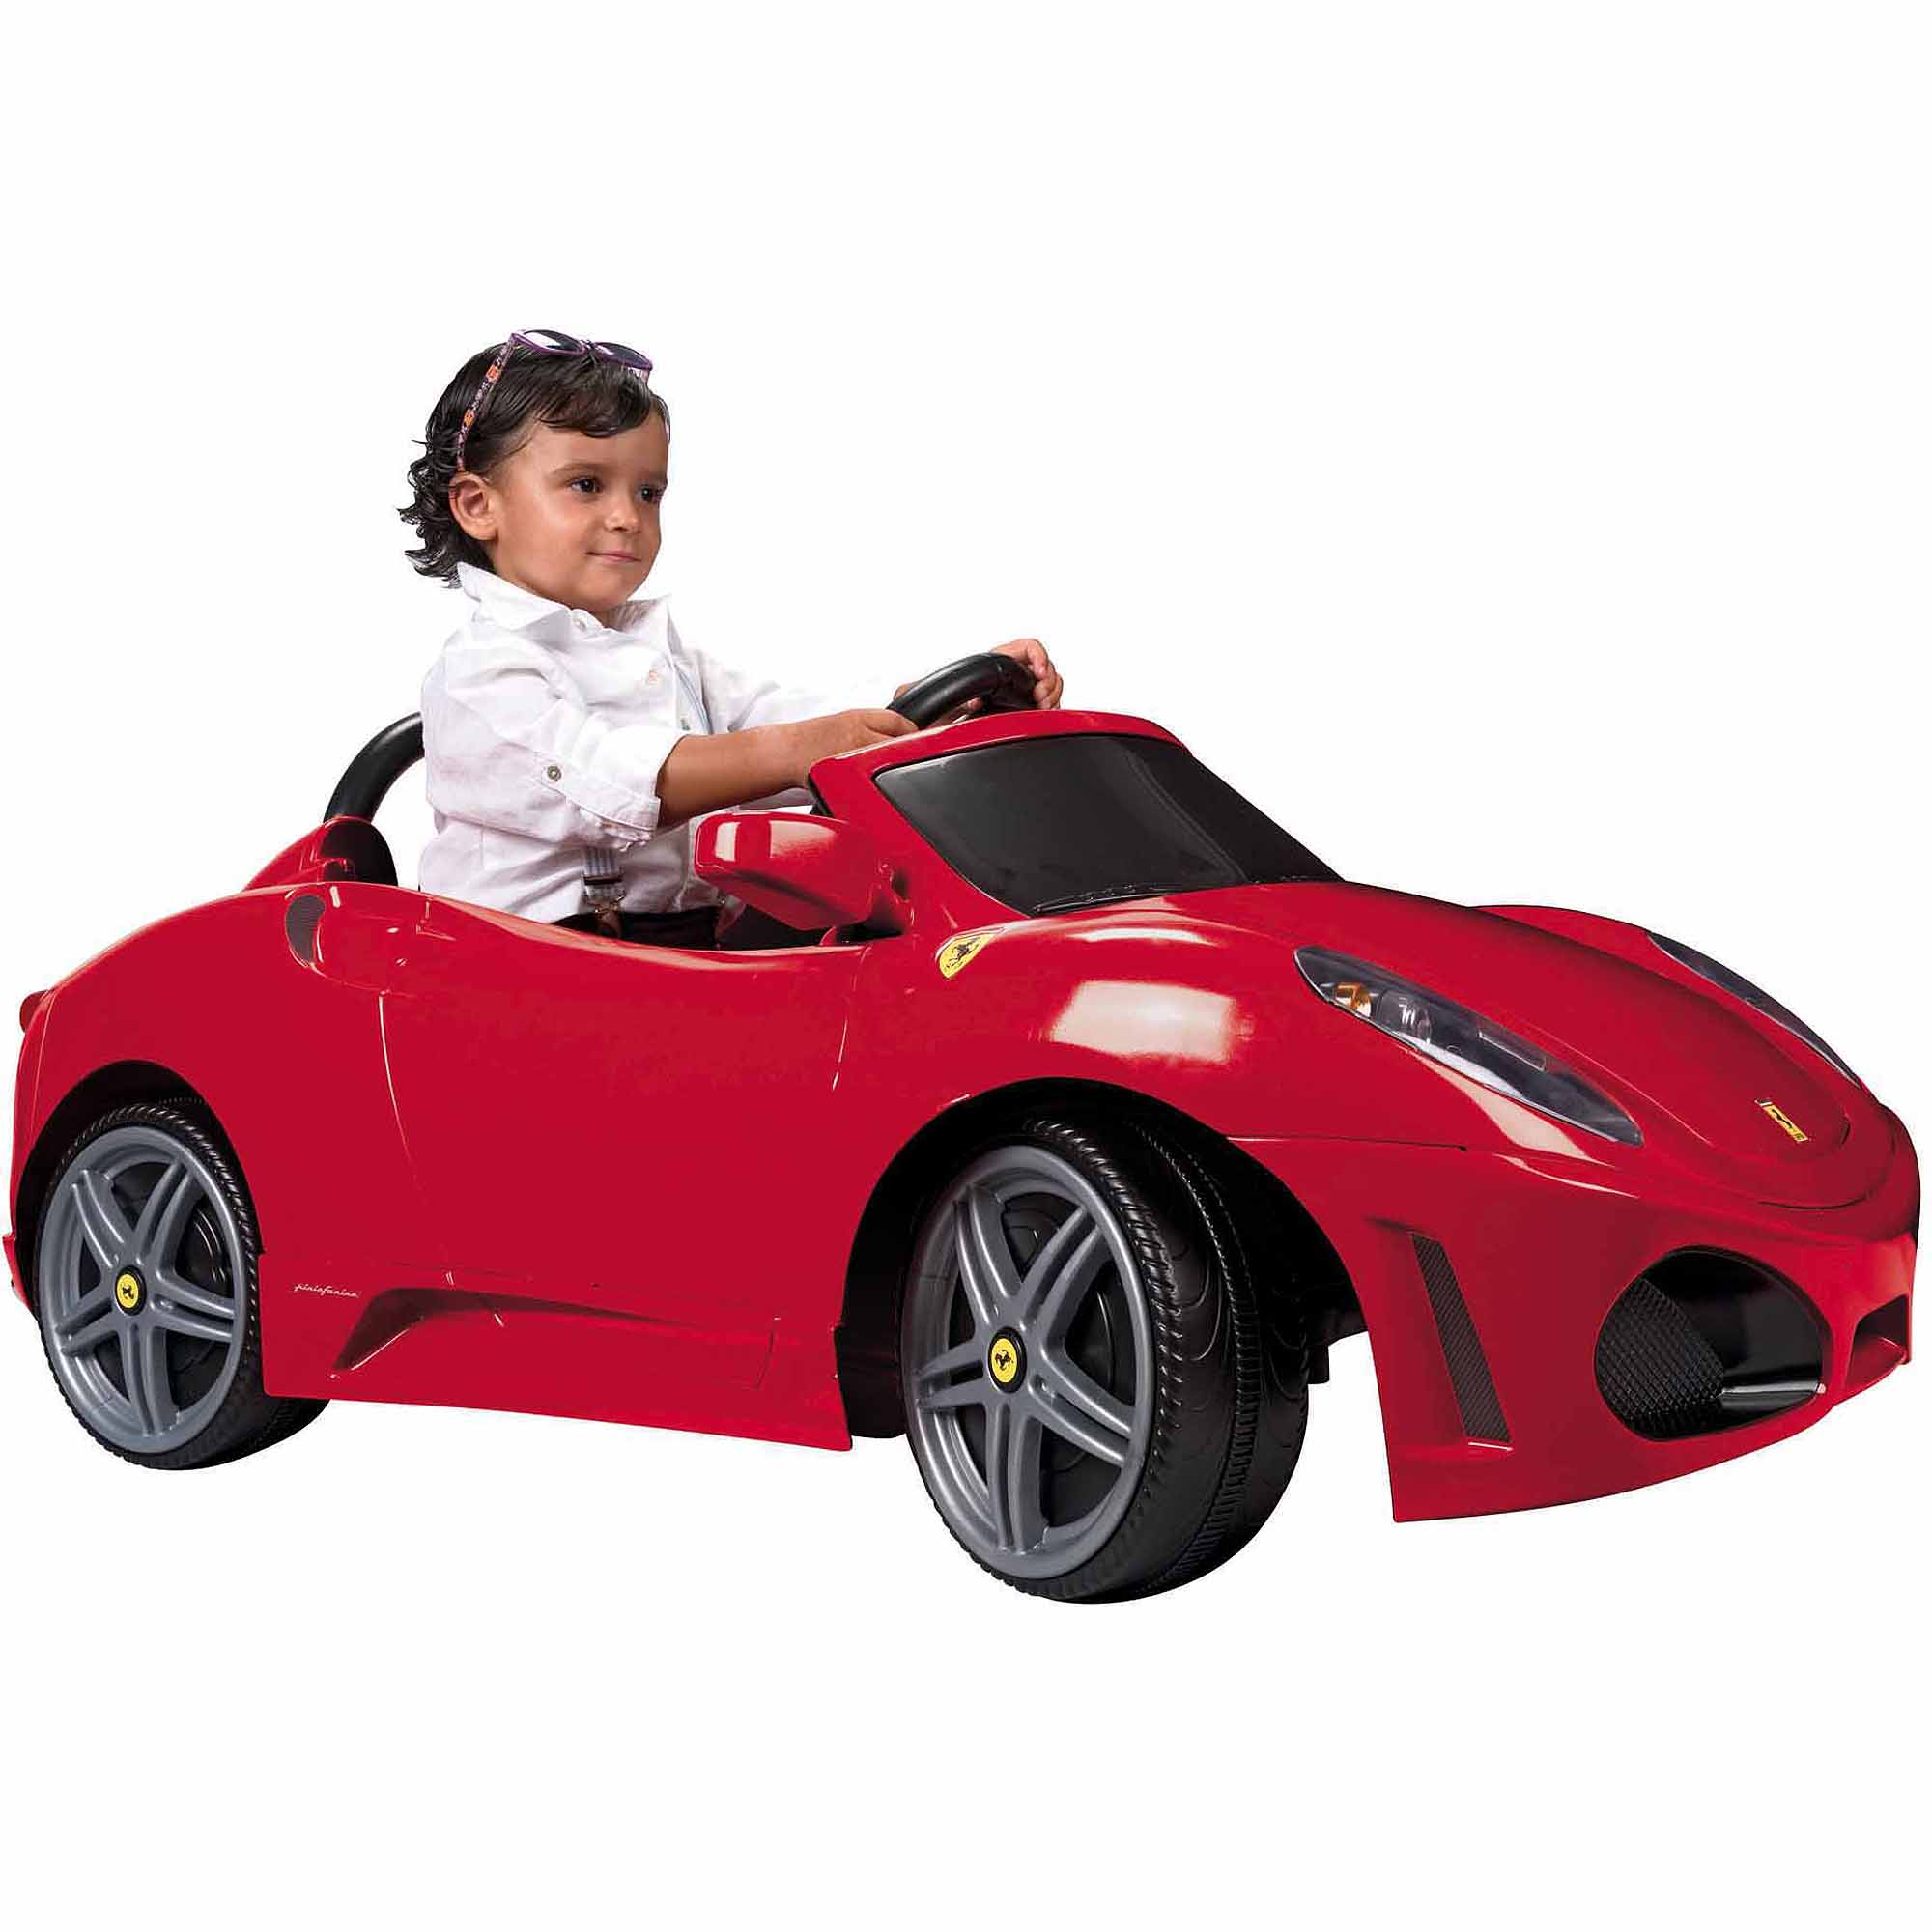 Ferrari F430 6-Volt Battery-Powered Ride-On, Cherry Red